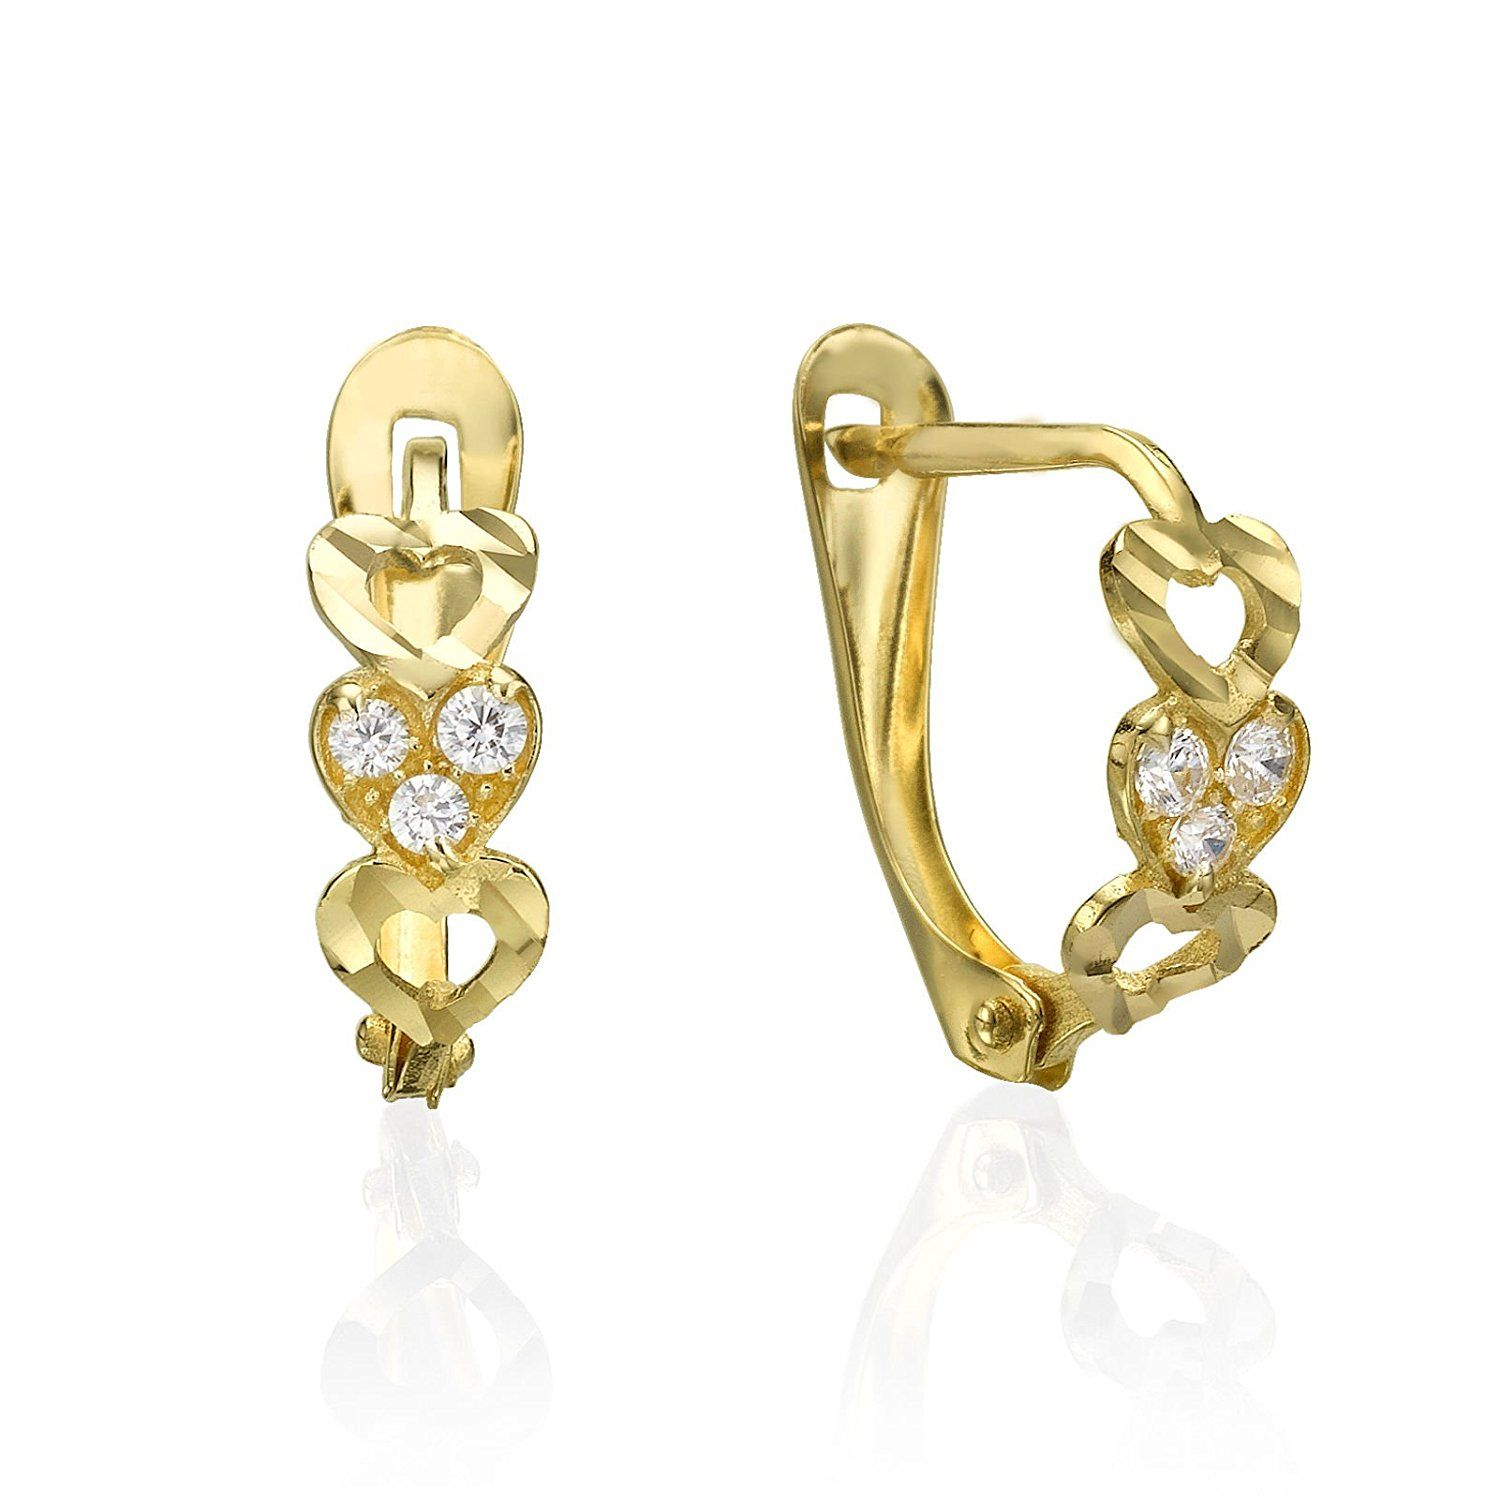 14K Solid Yellow Gold Earrings Drop Dangle Cubic Zirconia Leverback Hoop Teen Woman Jewelry Gift >>> See this great product. (This is an affiliate link and I receive a commission for the sales)